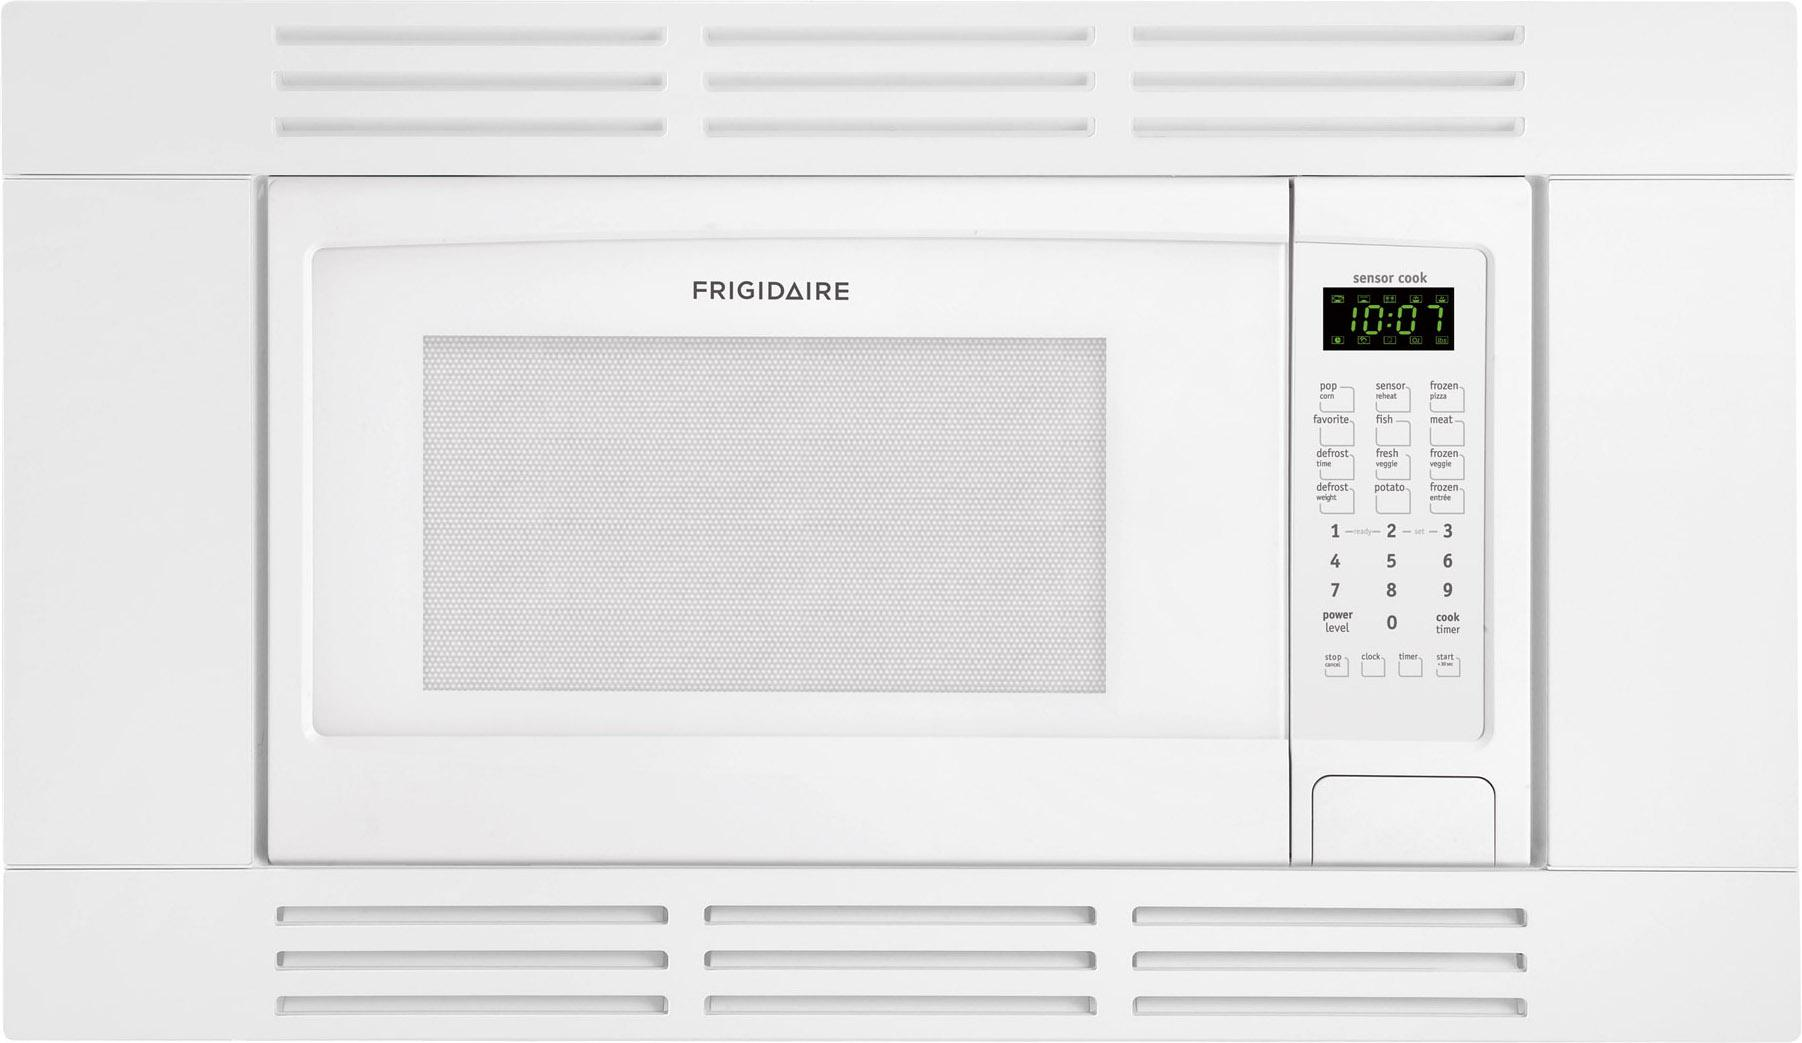 Frigidaire Microwaves 1.6 Cu. Ft. Built-In Microwave - Item Number: FFMO1611LW